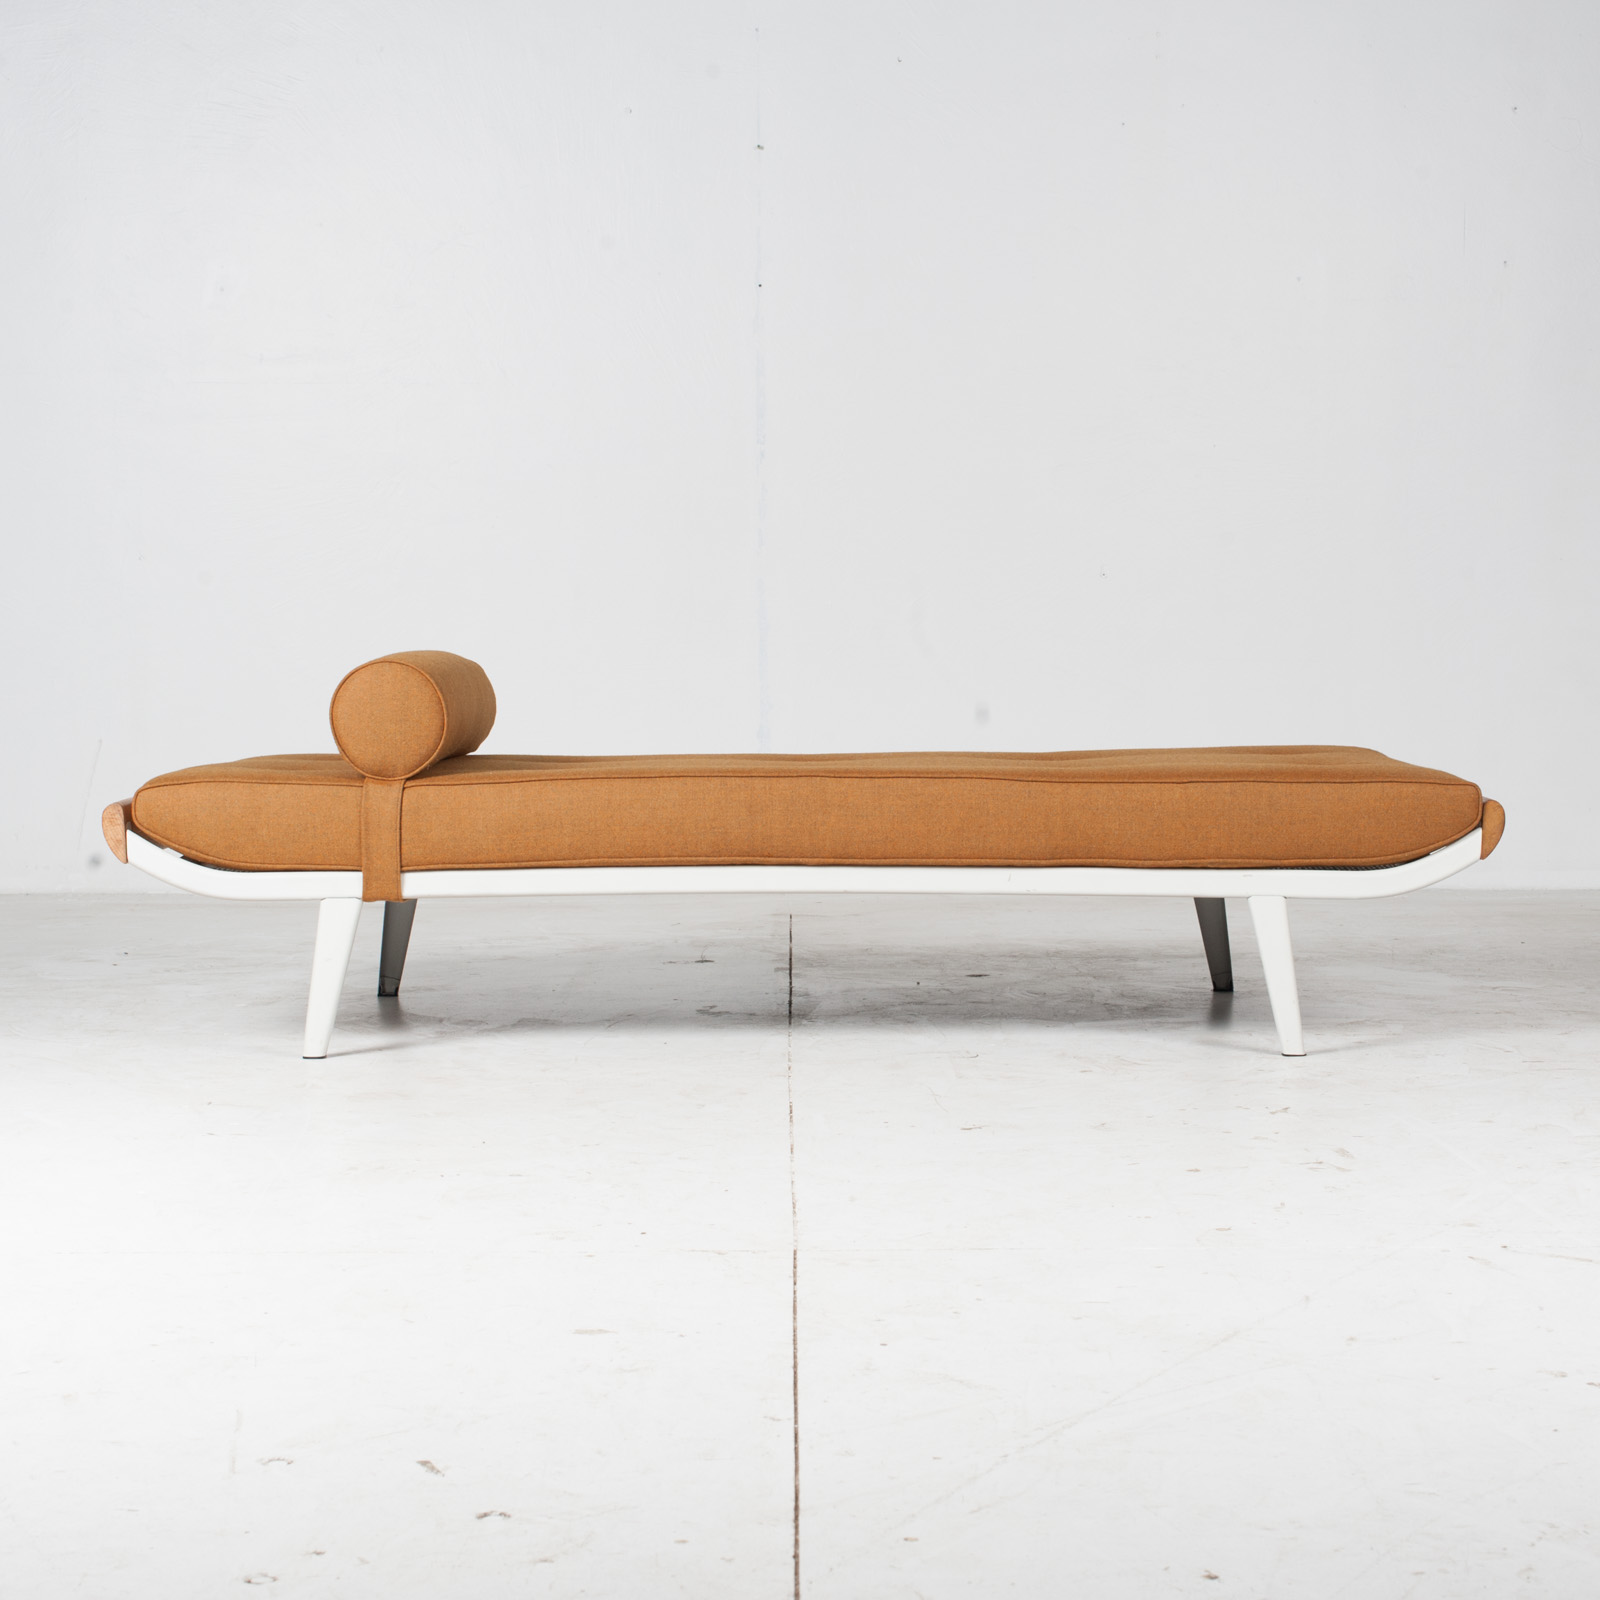 Cleopatra Daybed By Andre Cordemeyer For Auping In White Frame, 1950s, The Netherlands19